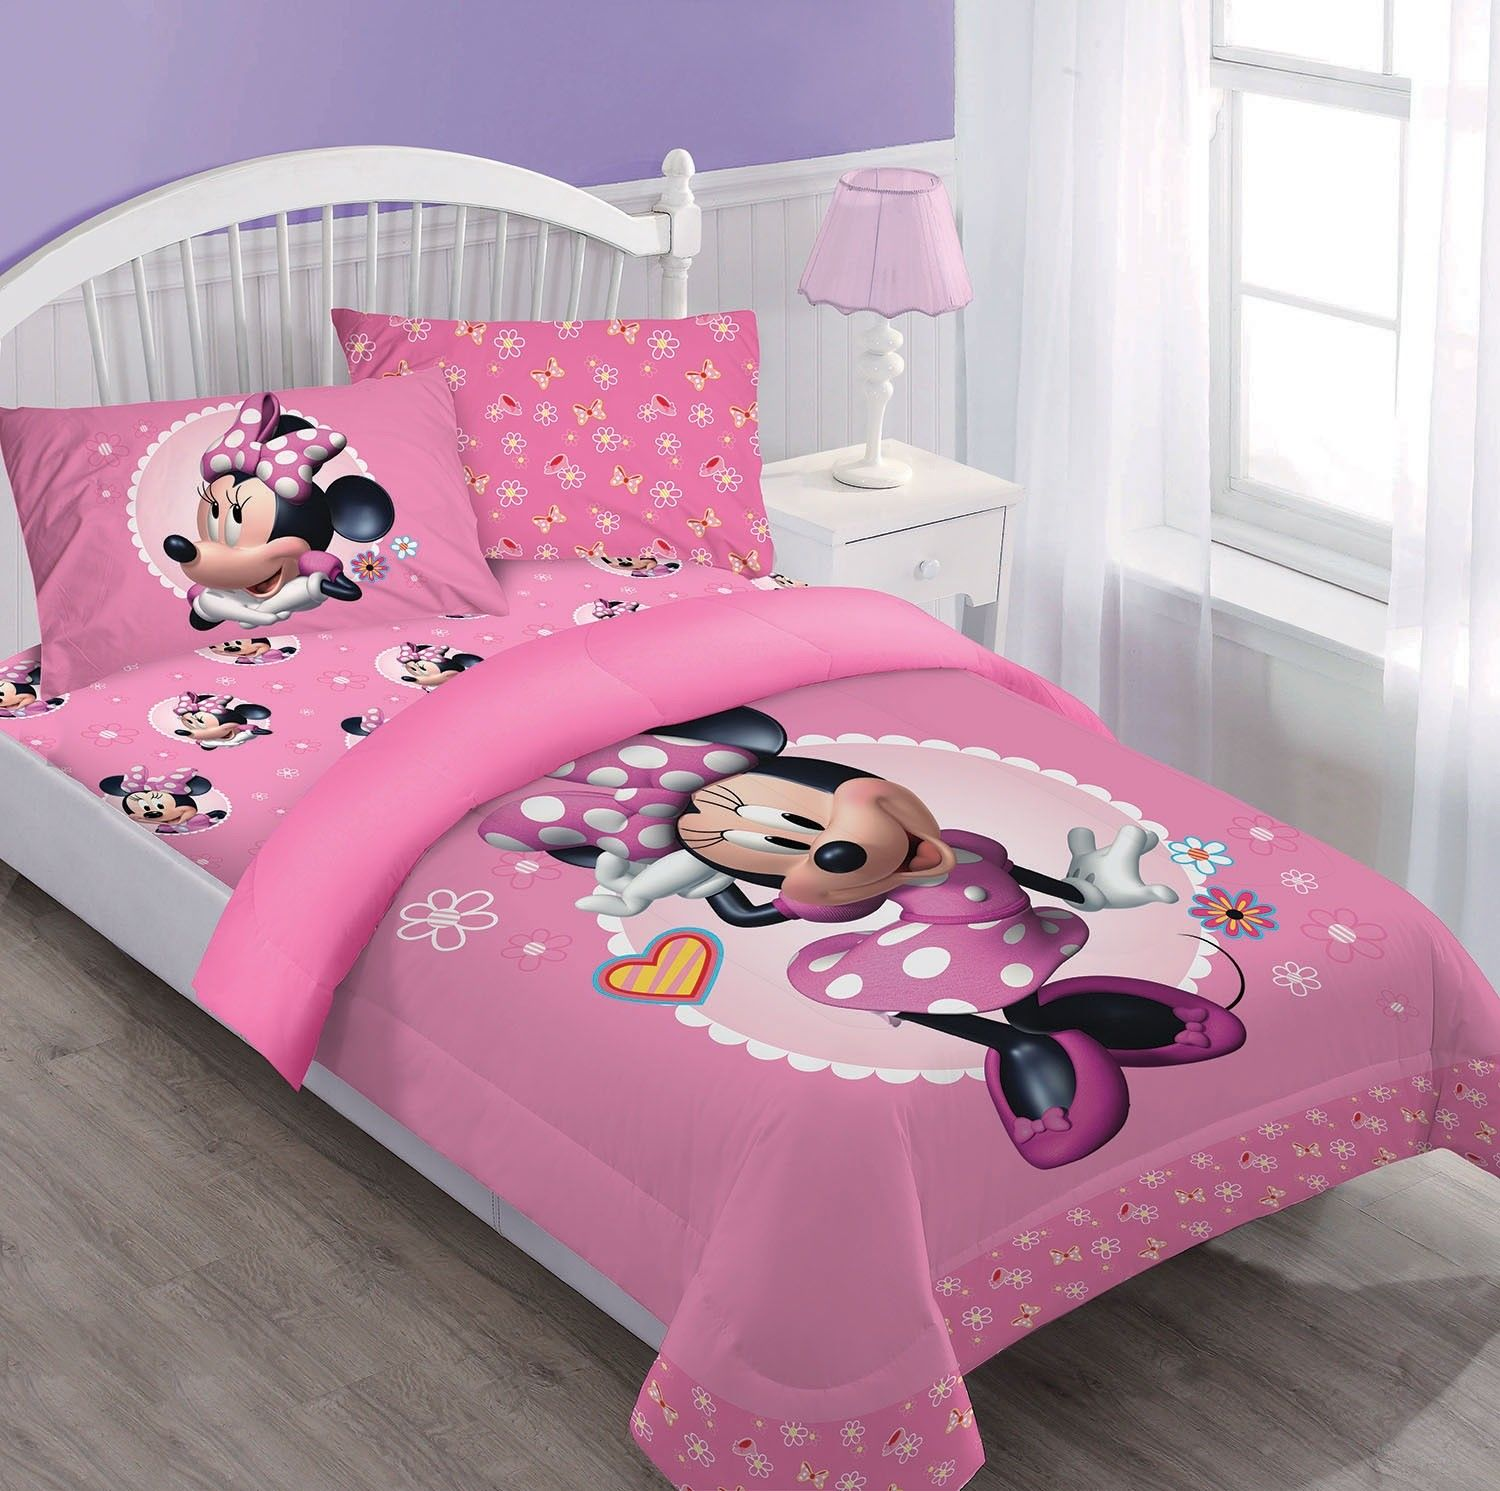 Twin Minnie Mouse Disney BED IN A BAG Comforter Set W/Fitted Sheet And Pillowcase